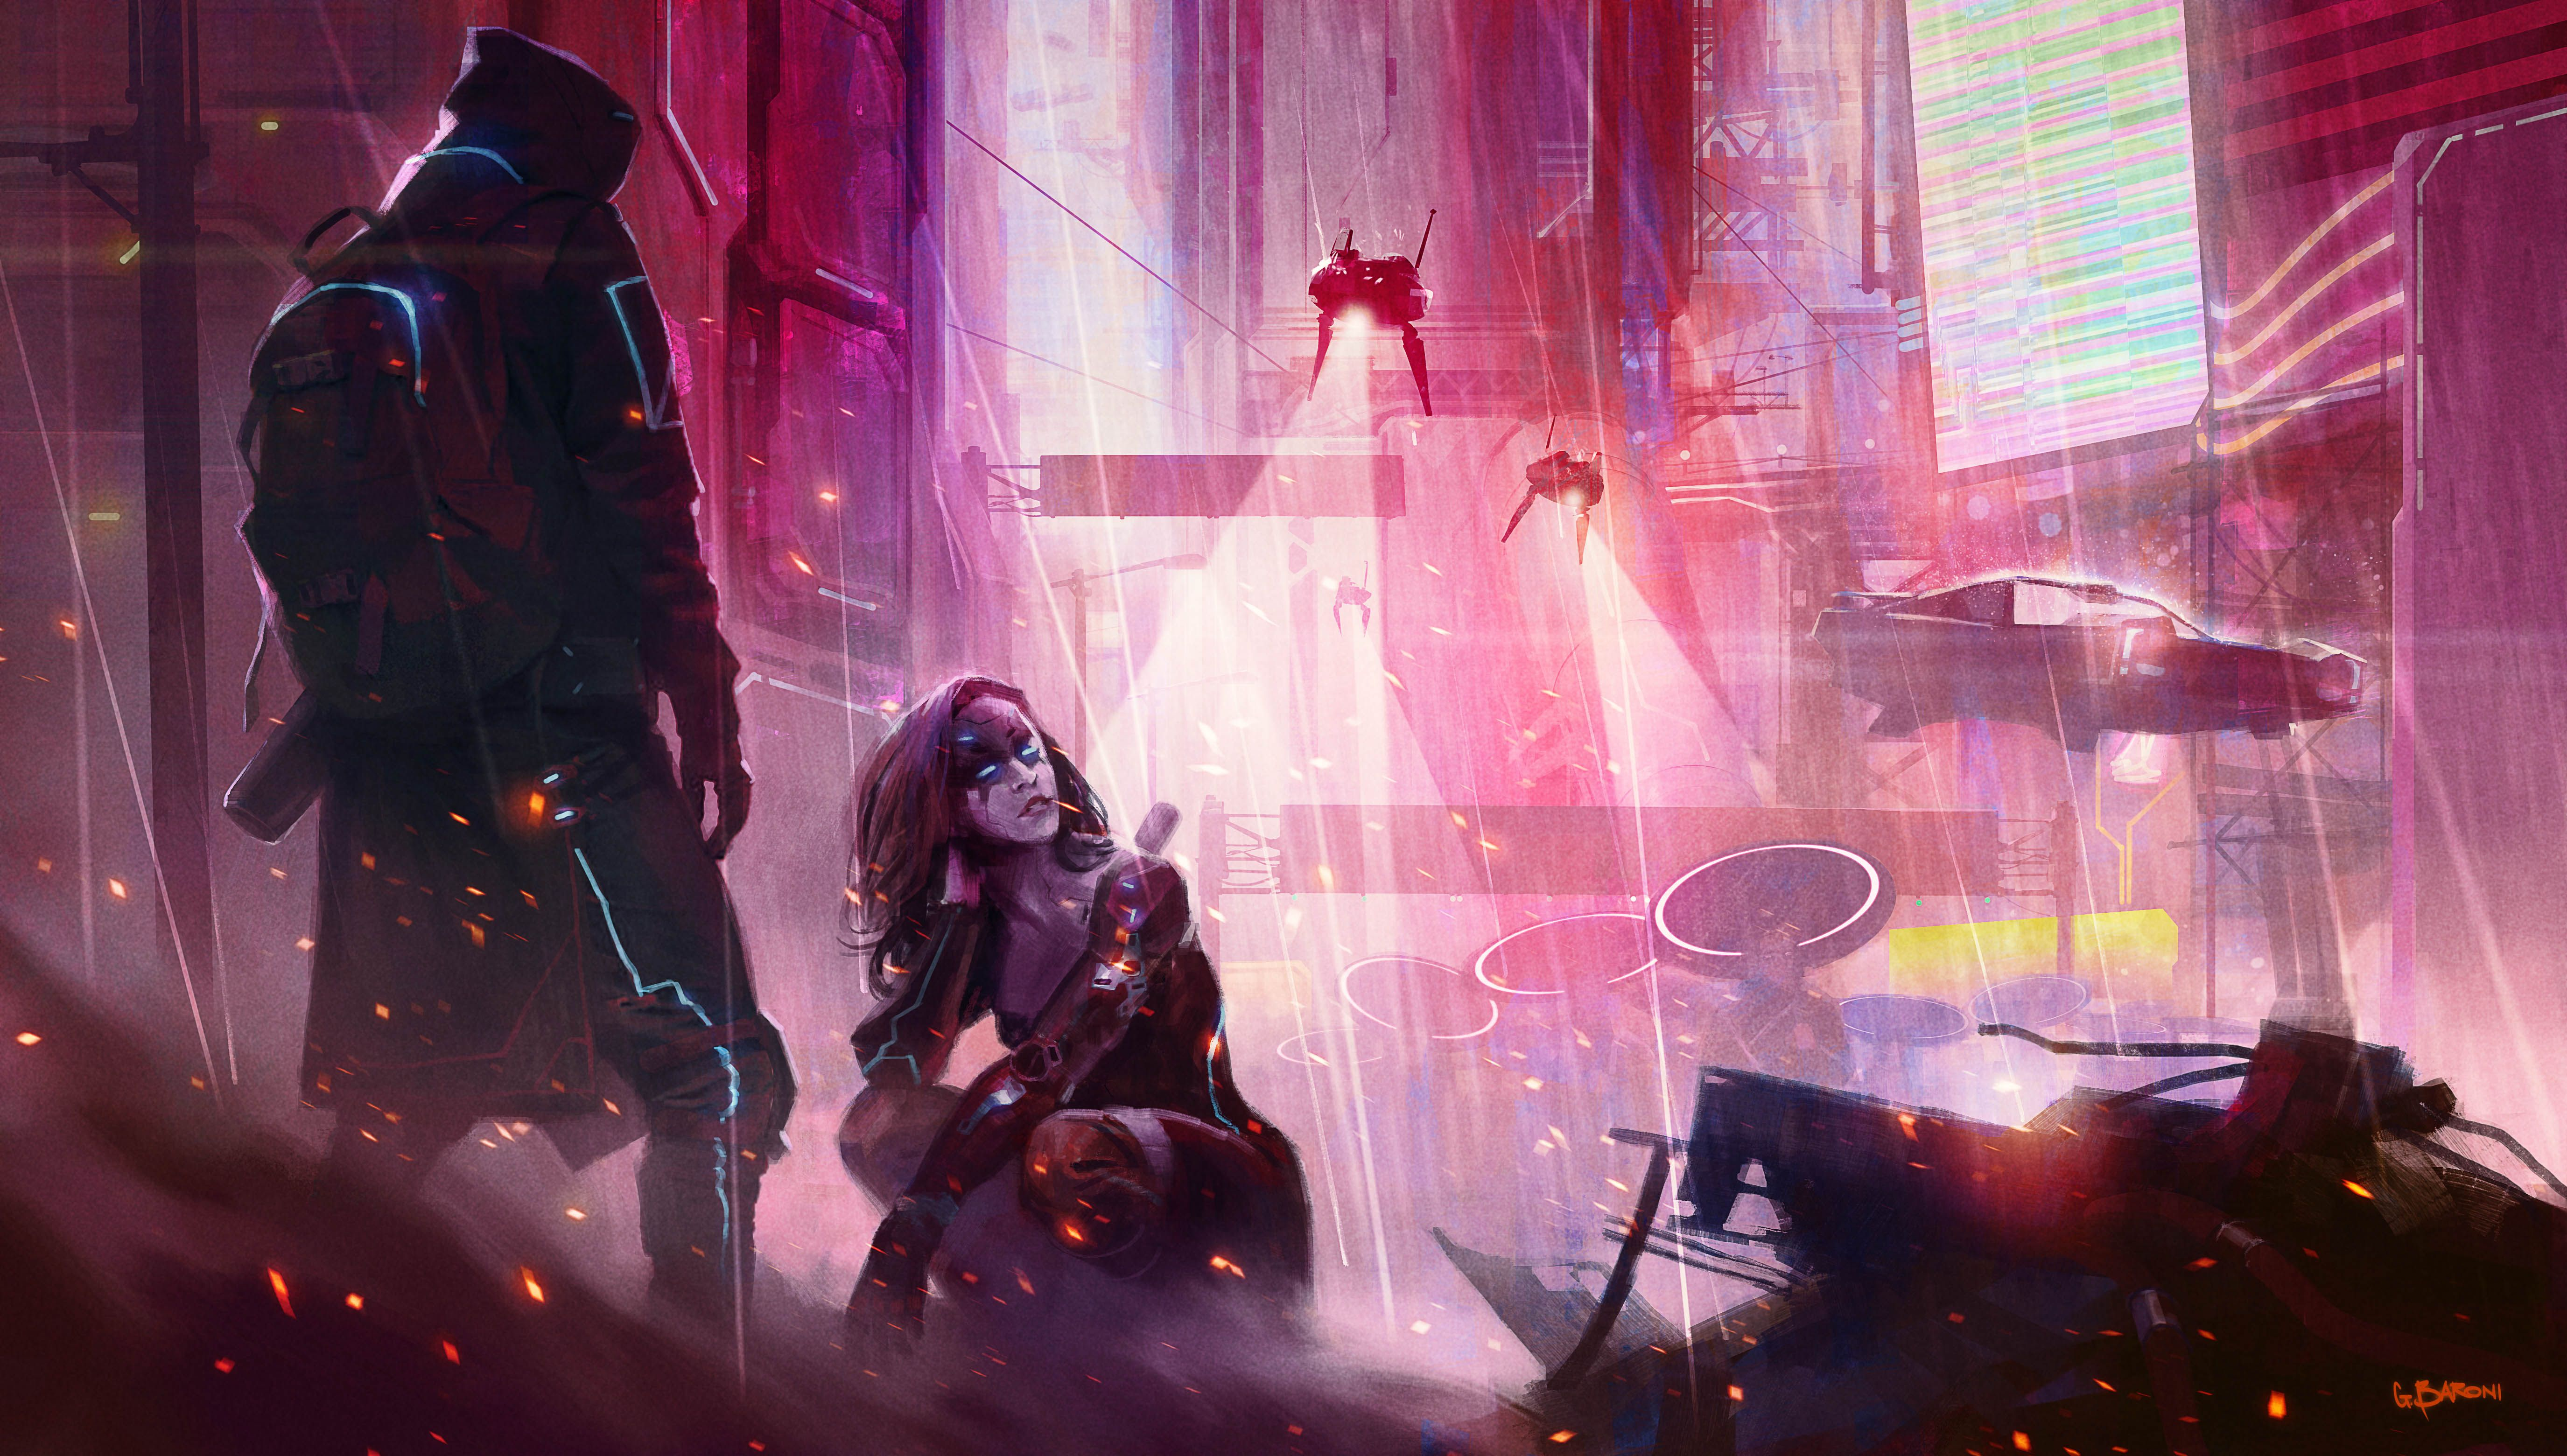 New cyberpunk gridbased RPG game Conglomerate451 has